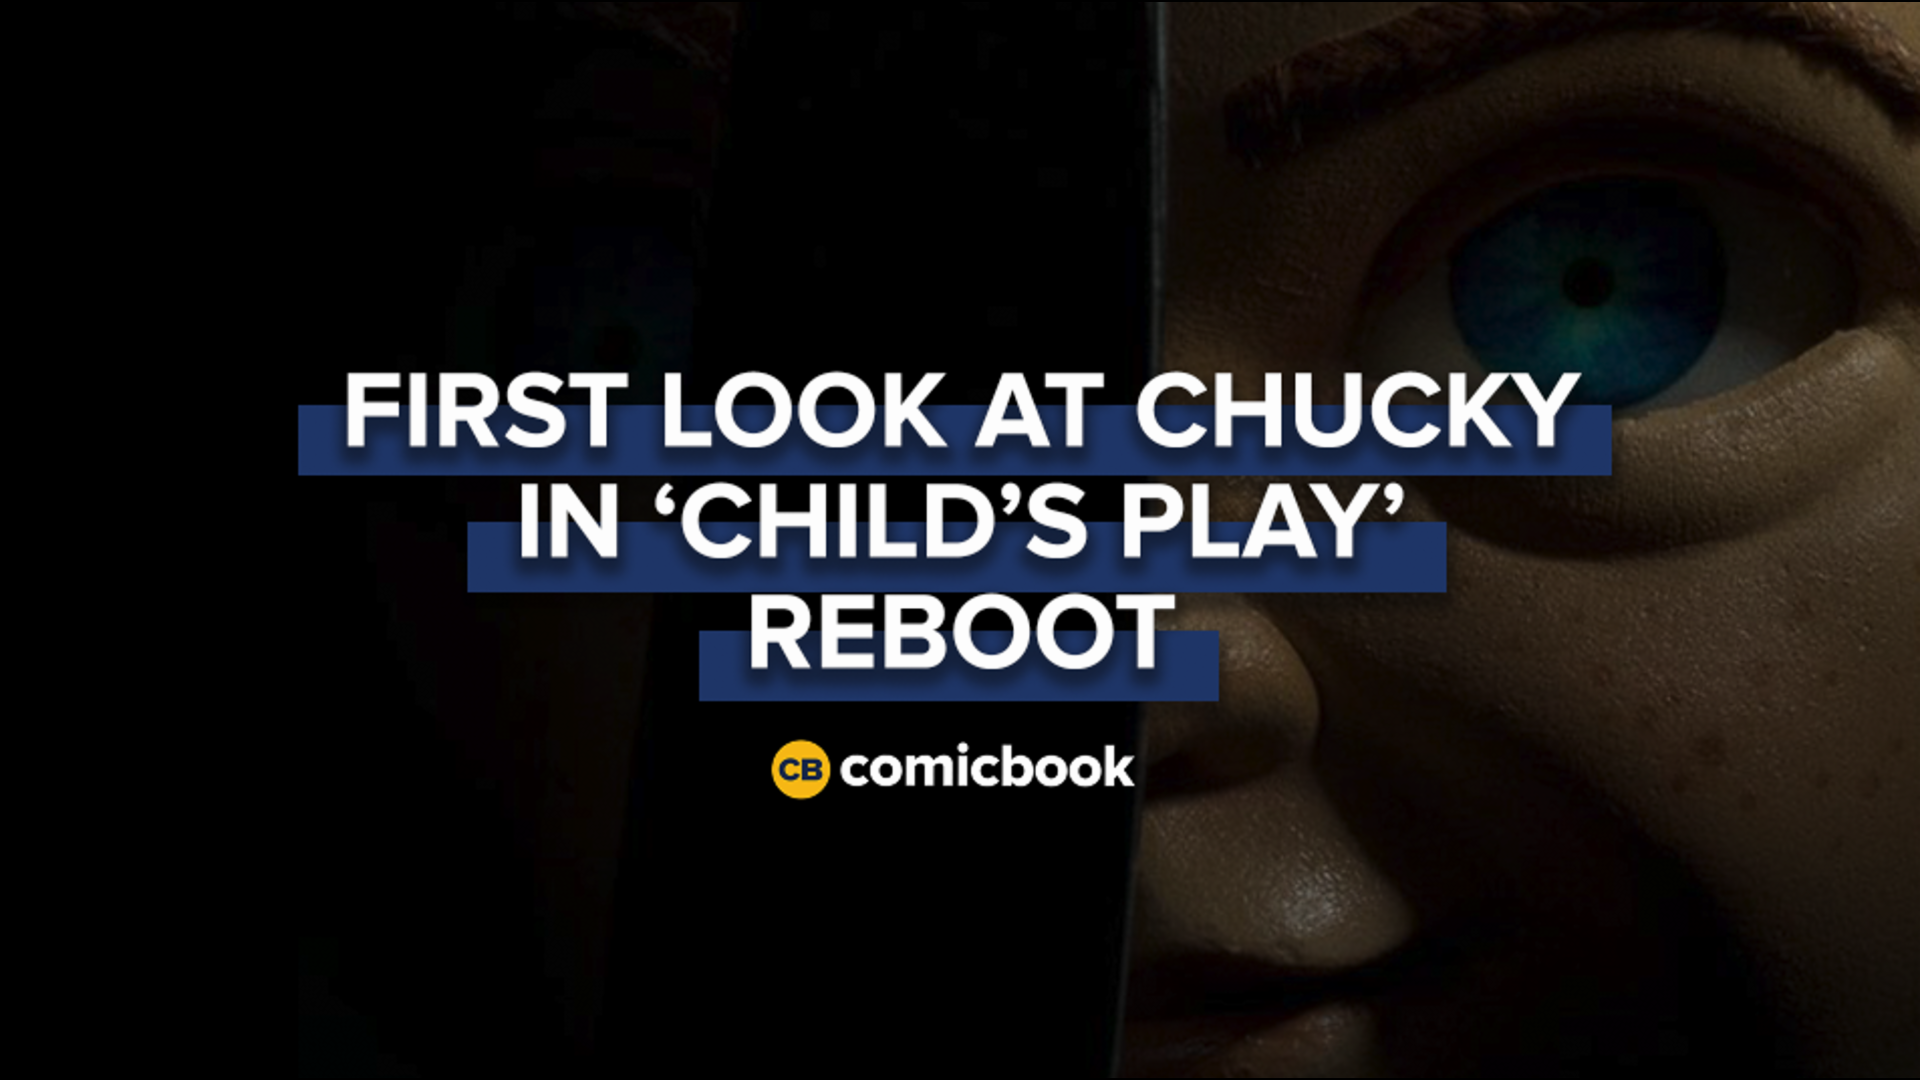 First Look at Chuck in 'Child's Play' Reboot screen capture